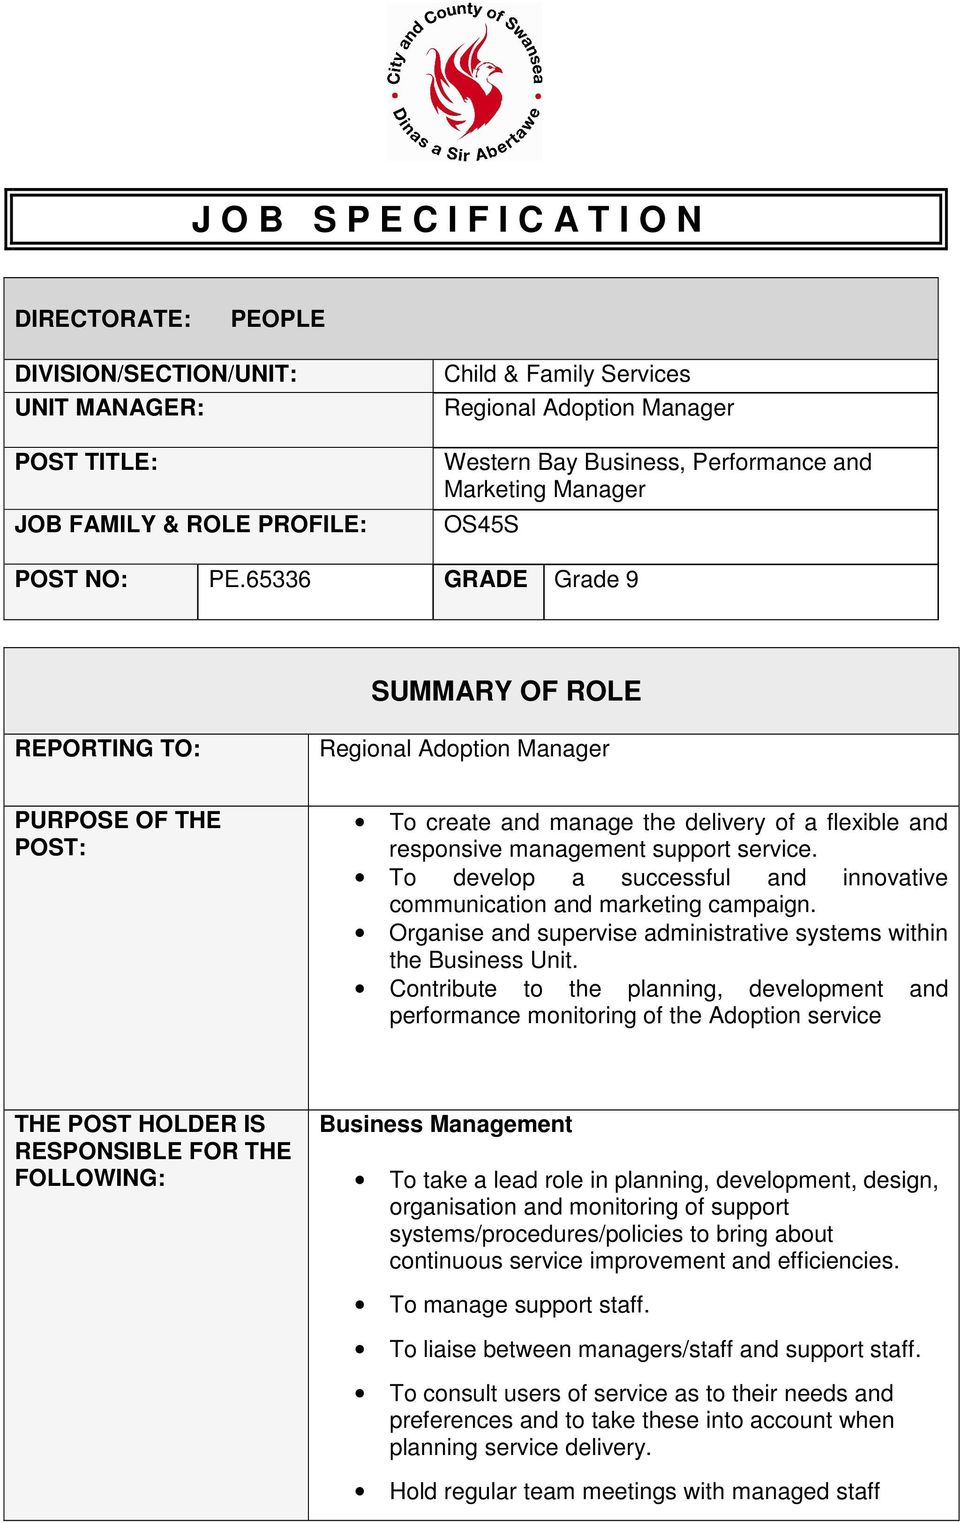 65336 GRADE Grade 9 SUMMARY OF ROLE REPORTING TO: Regional Adoption Manager PURPOSE OF THE POST: To create and manage the delivery of a flexible and responsive management support service.